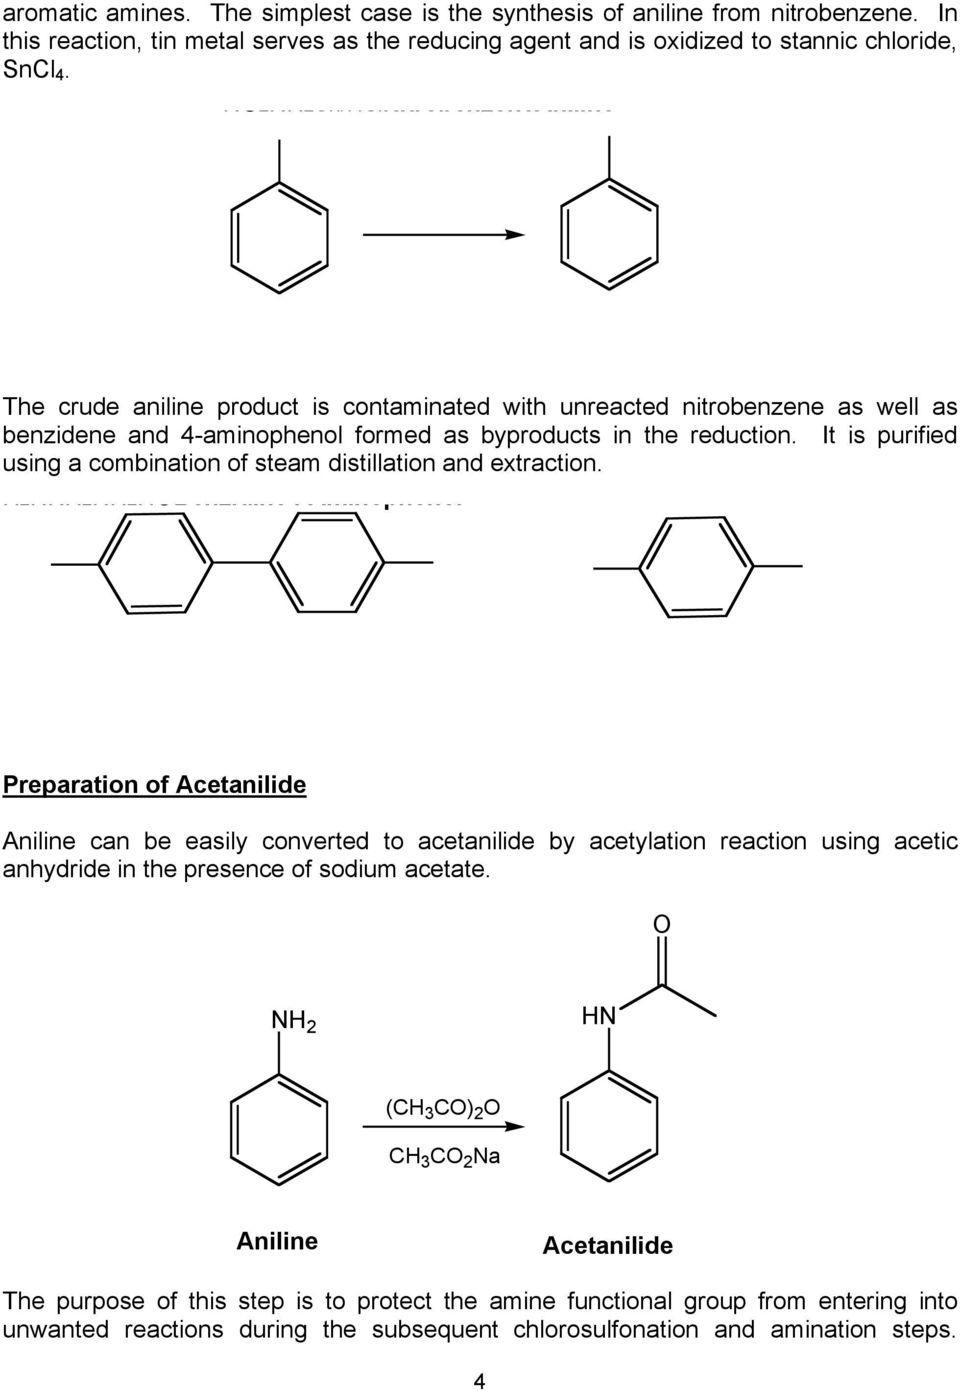 acetylation of aniline with acetic anhydride